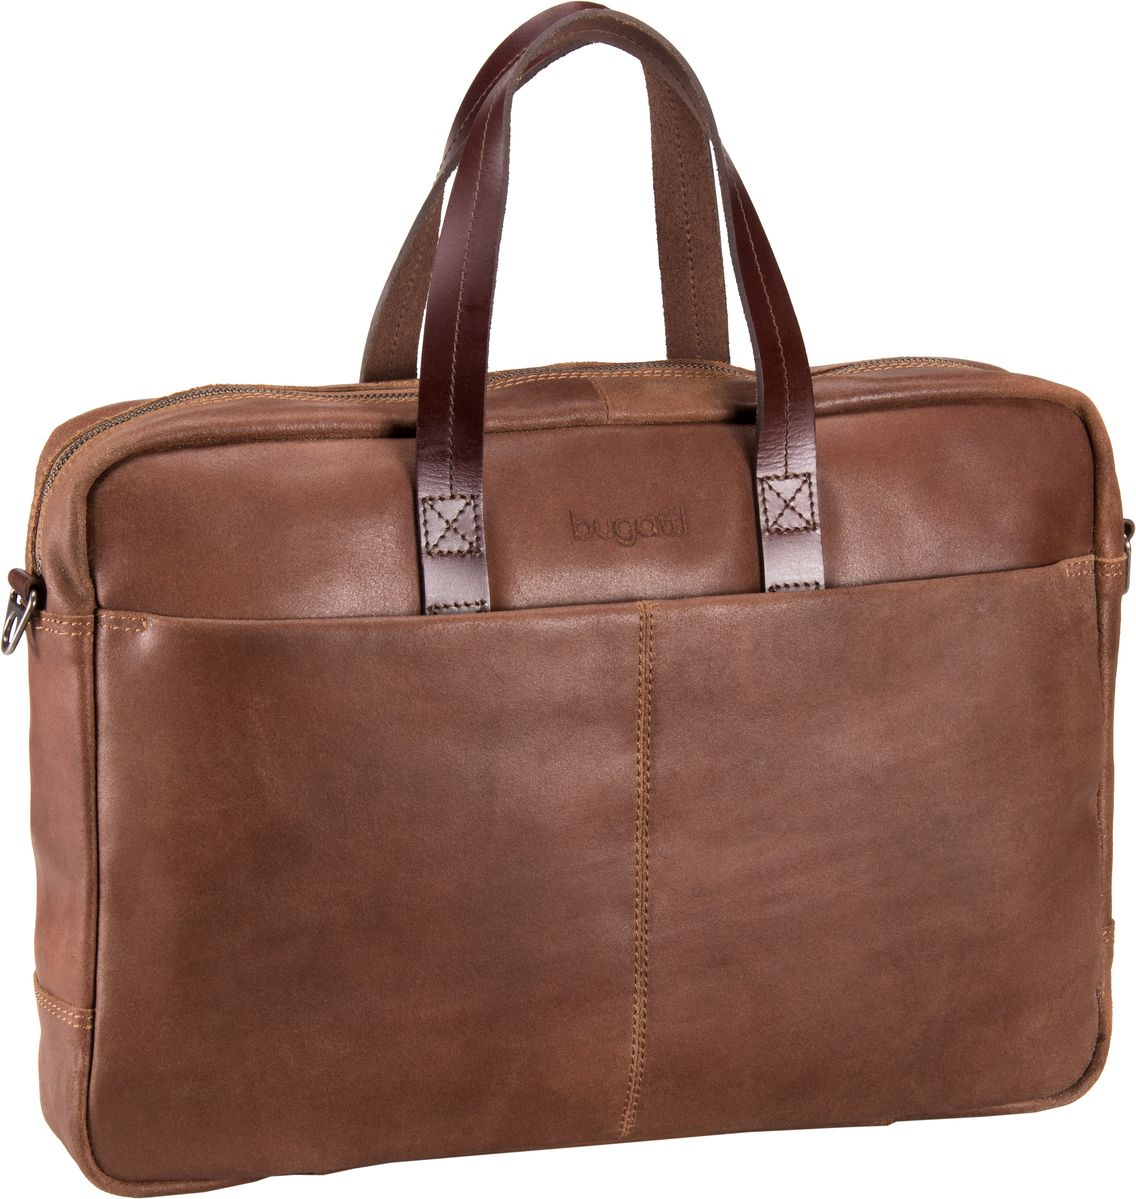 Grinta Brief Bag Medium Cognac